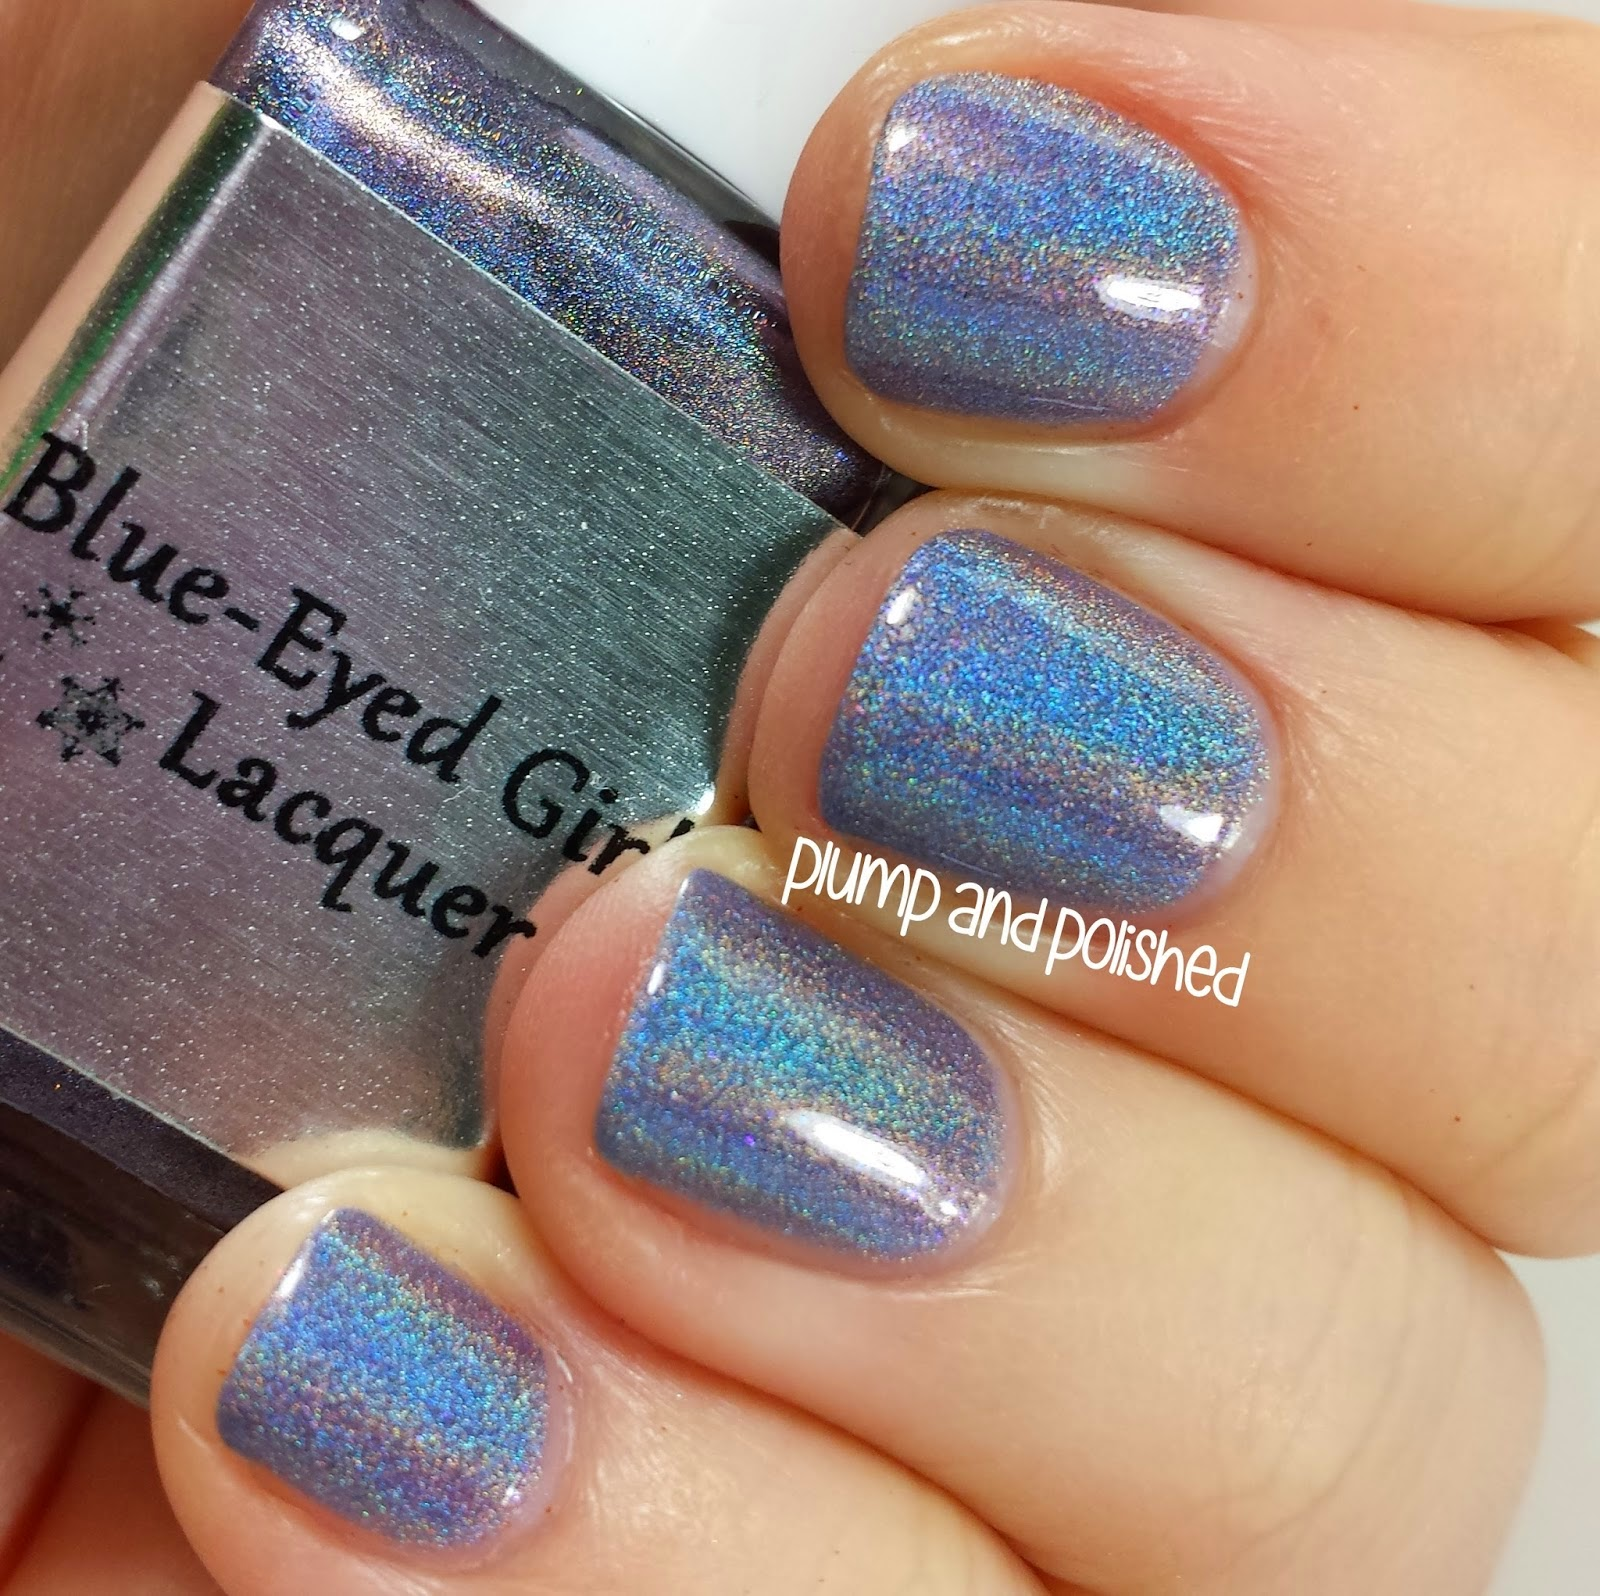 Blue-Eyed Girl Lacquer - Hypothermia